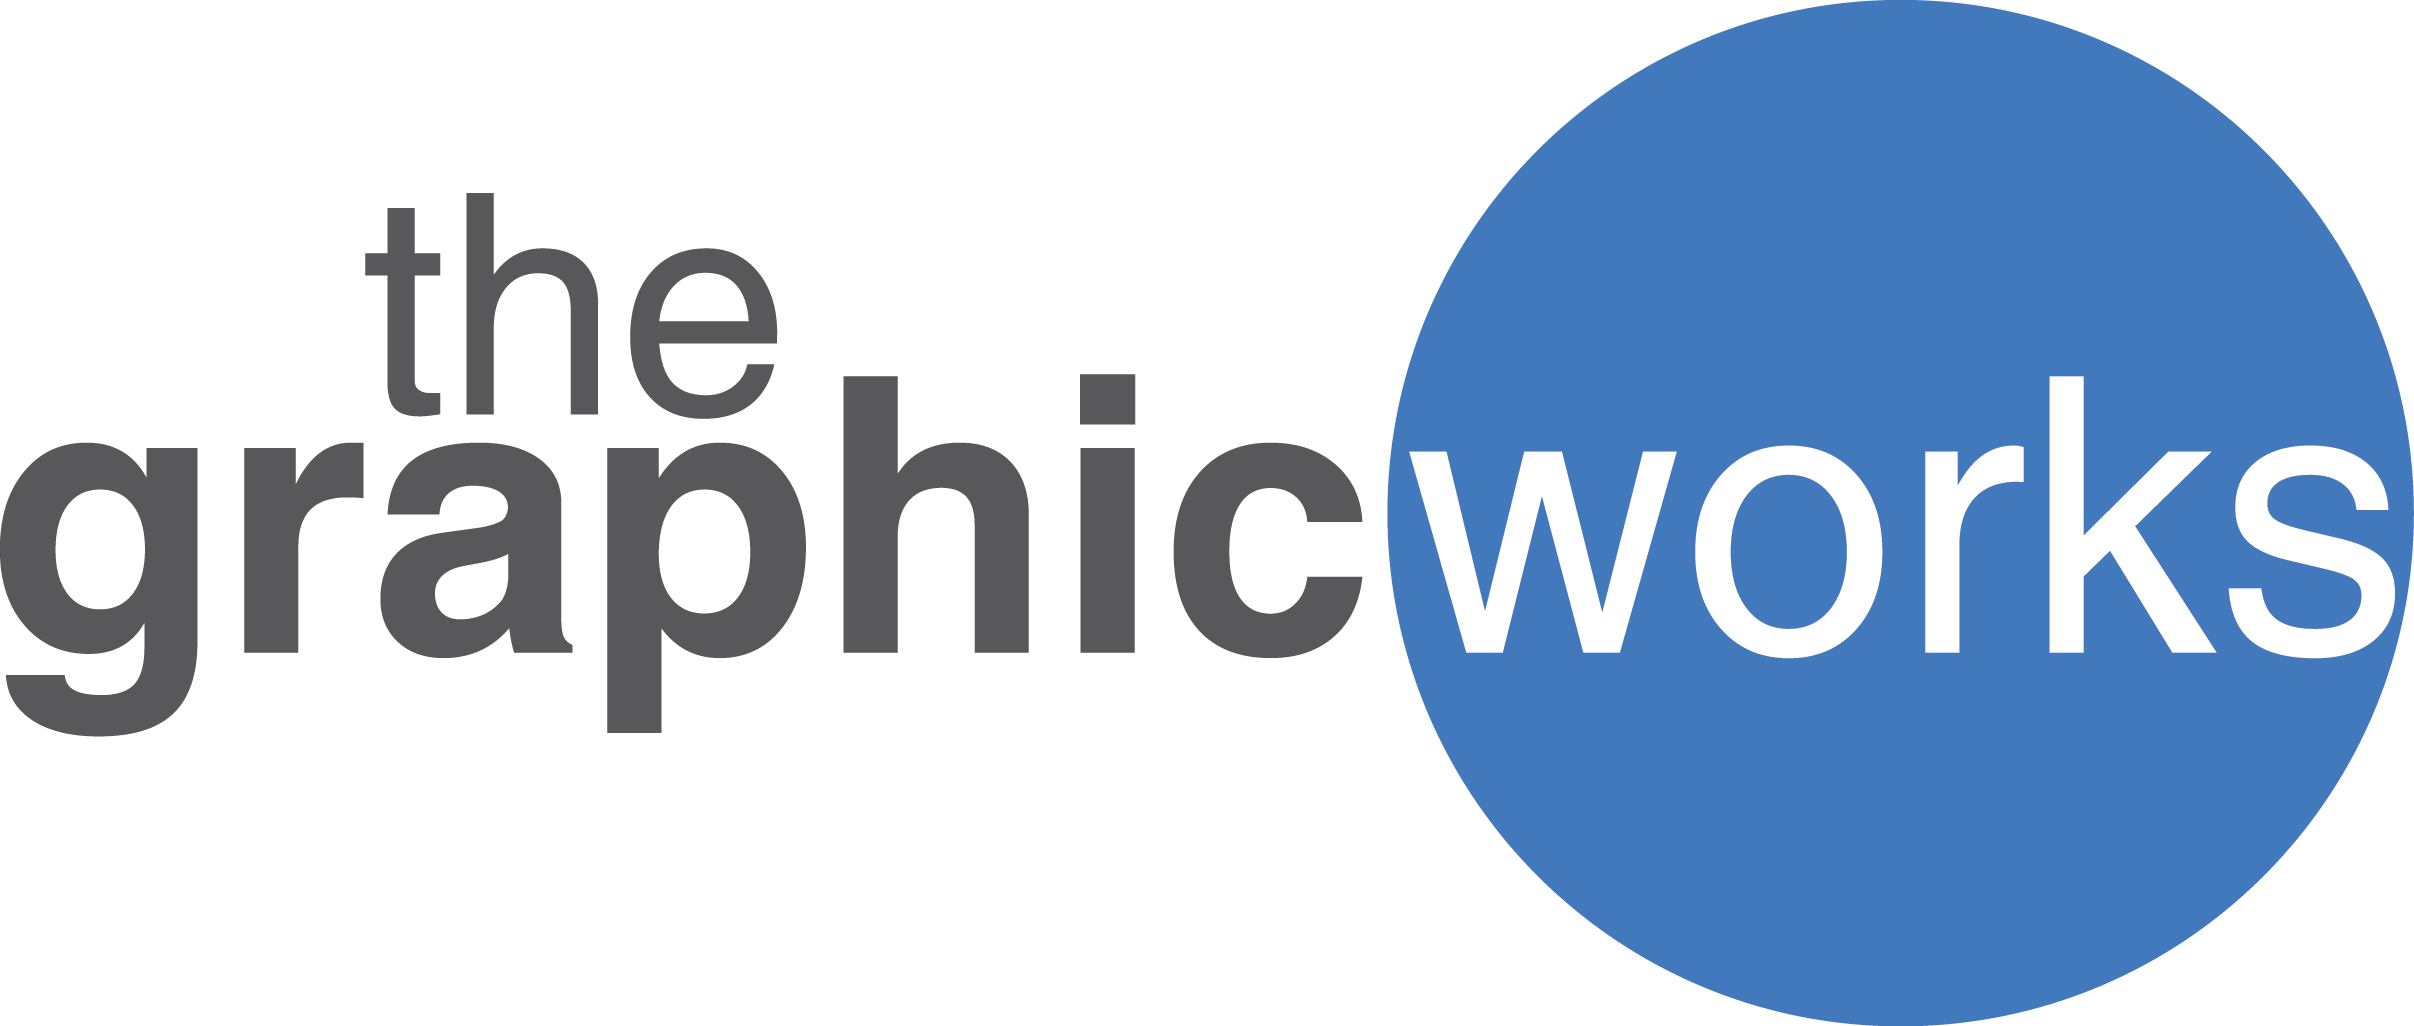 Product Sponsor the graphicworks